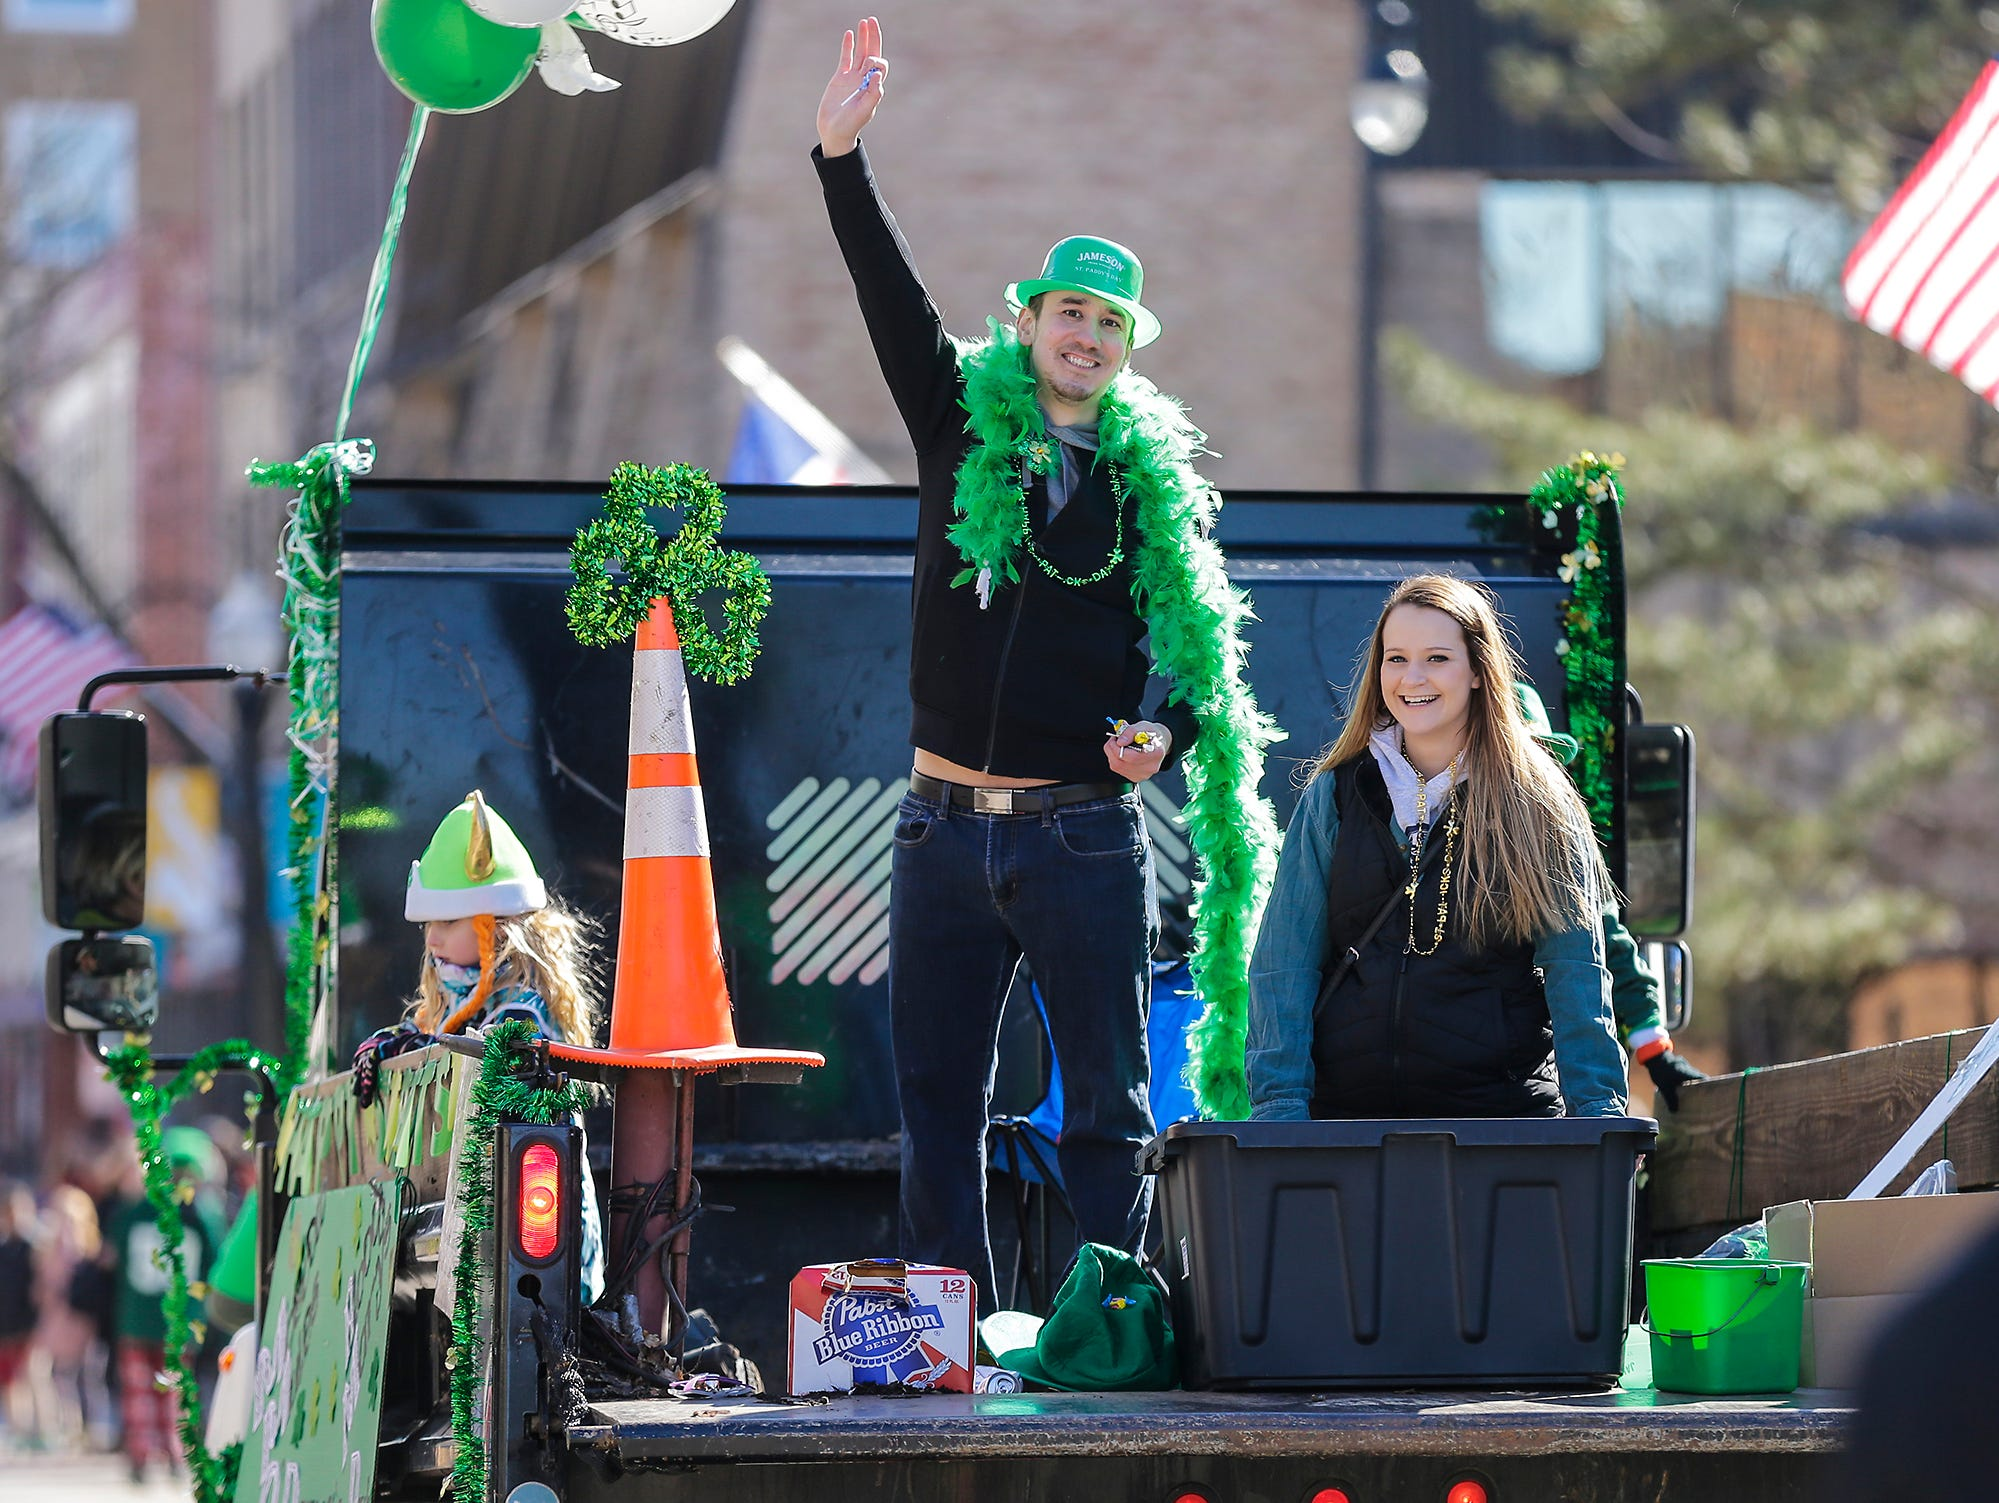 Arthur Deleon and Arianna Amend ride in the Lawn Boy/O'Davey's Pub float in the City of Fond du Lac St. Patrick's Day Parade Saturday, March 16, 2019 on Main Street in downtown Fond du Lac. Hundreds of people lined the street to watch over 50 parade participants. Doug Raflik/USA TODAY NETWORK-Wisconsin